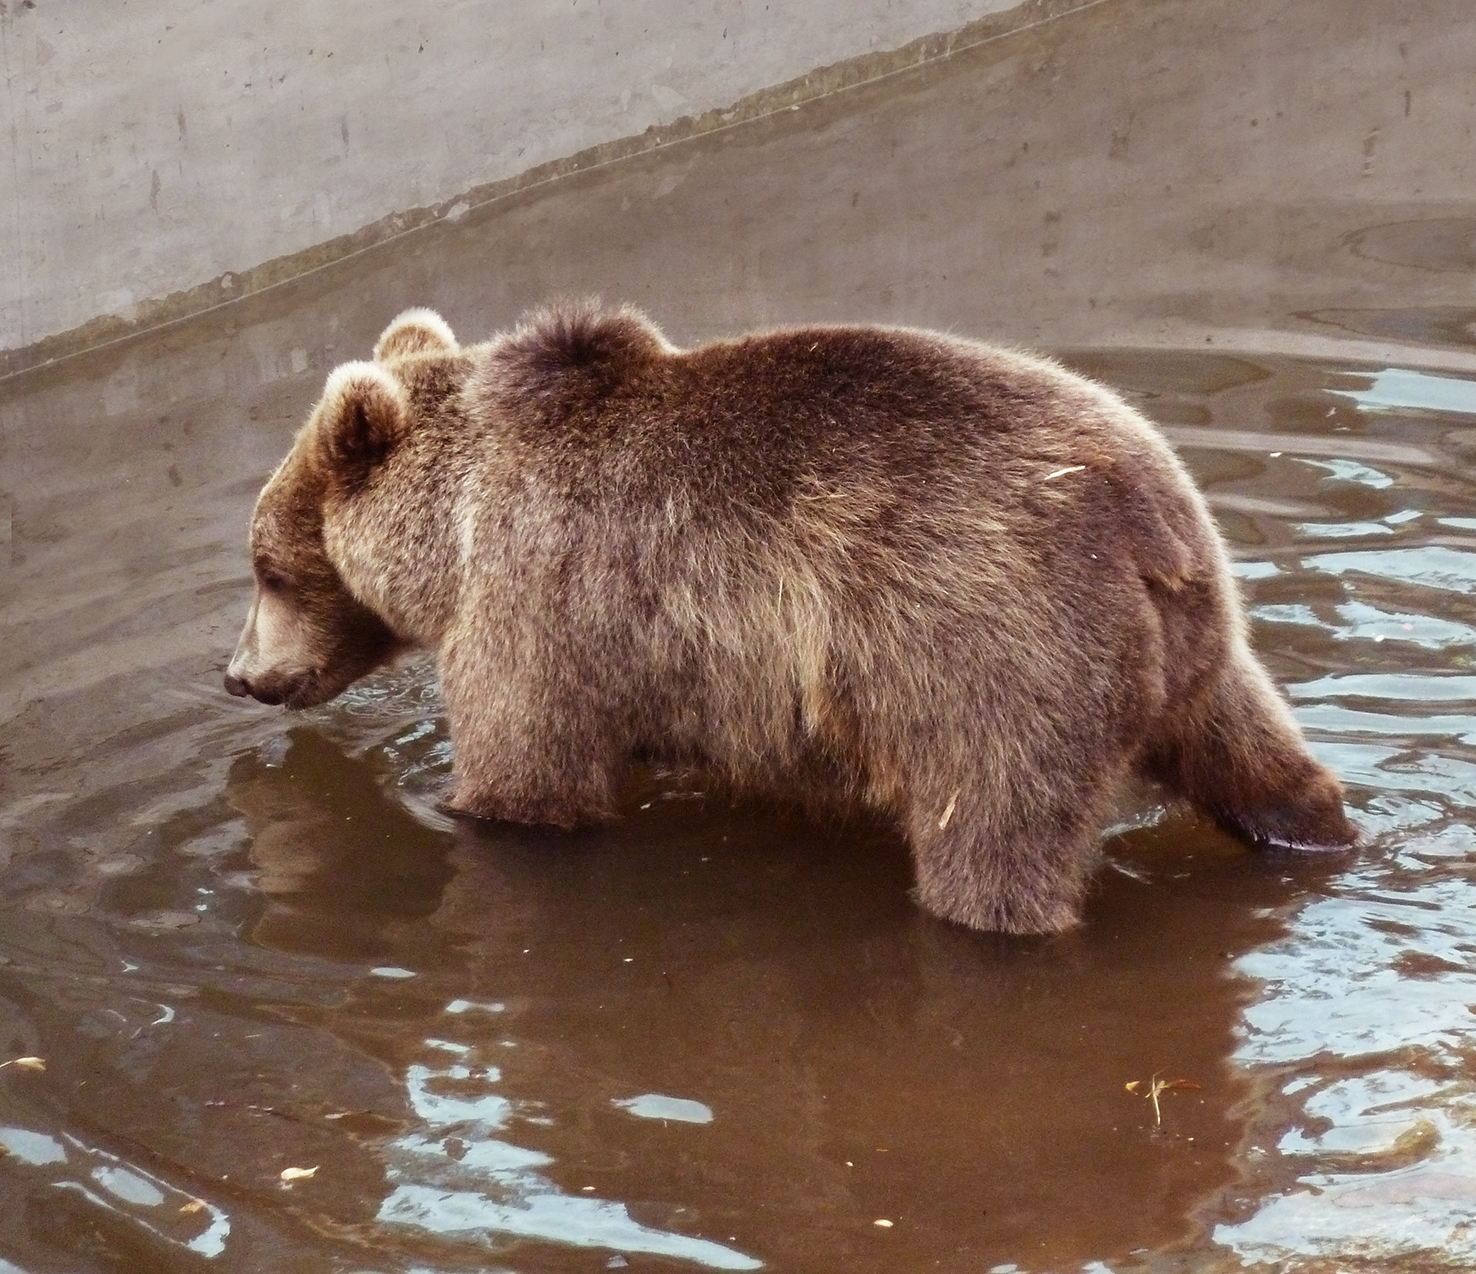 photo of brown bear in water